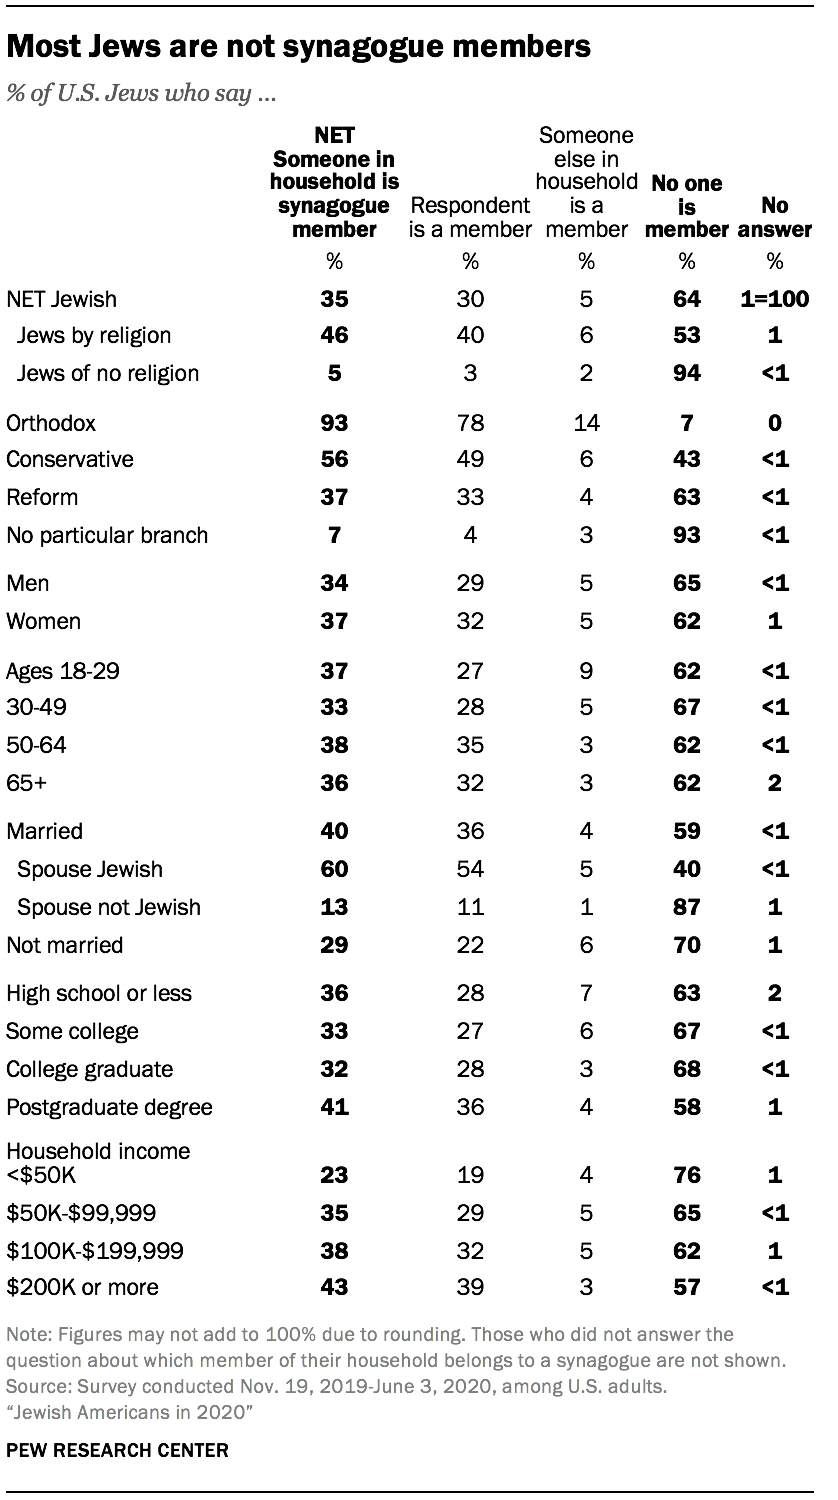 Most Jews are not synagogue members